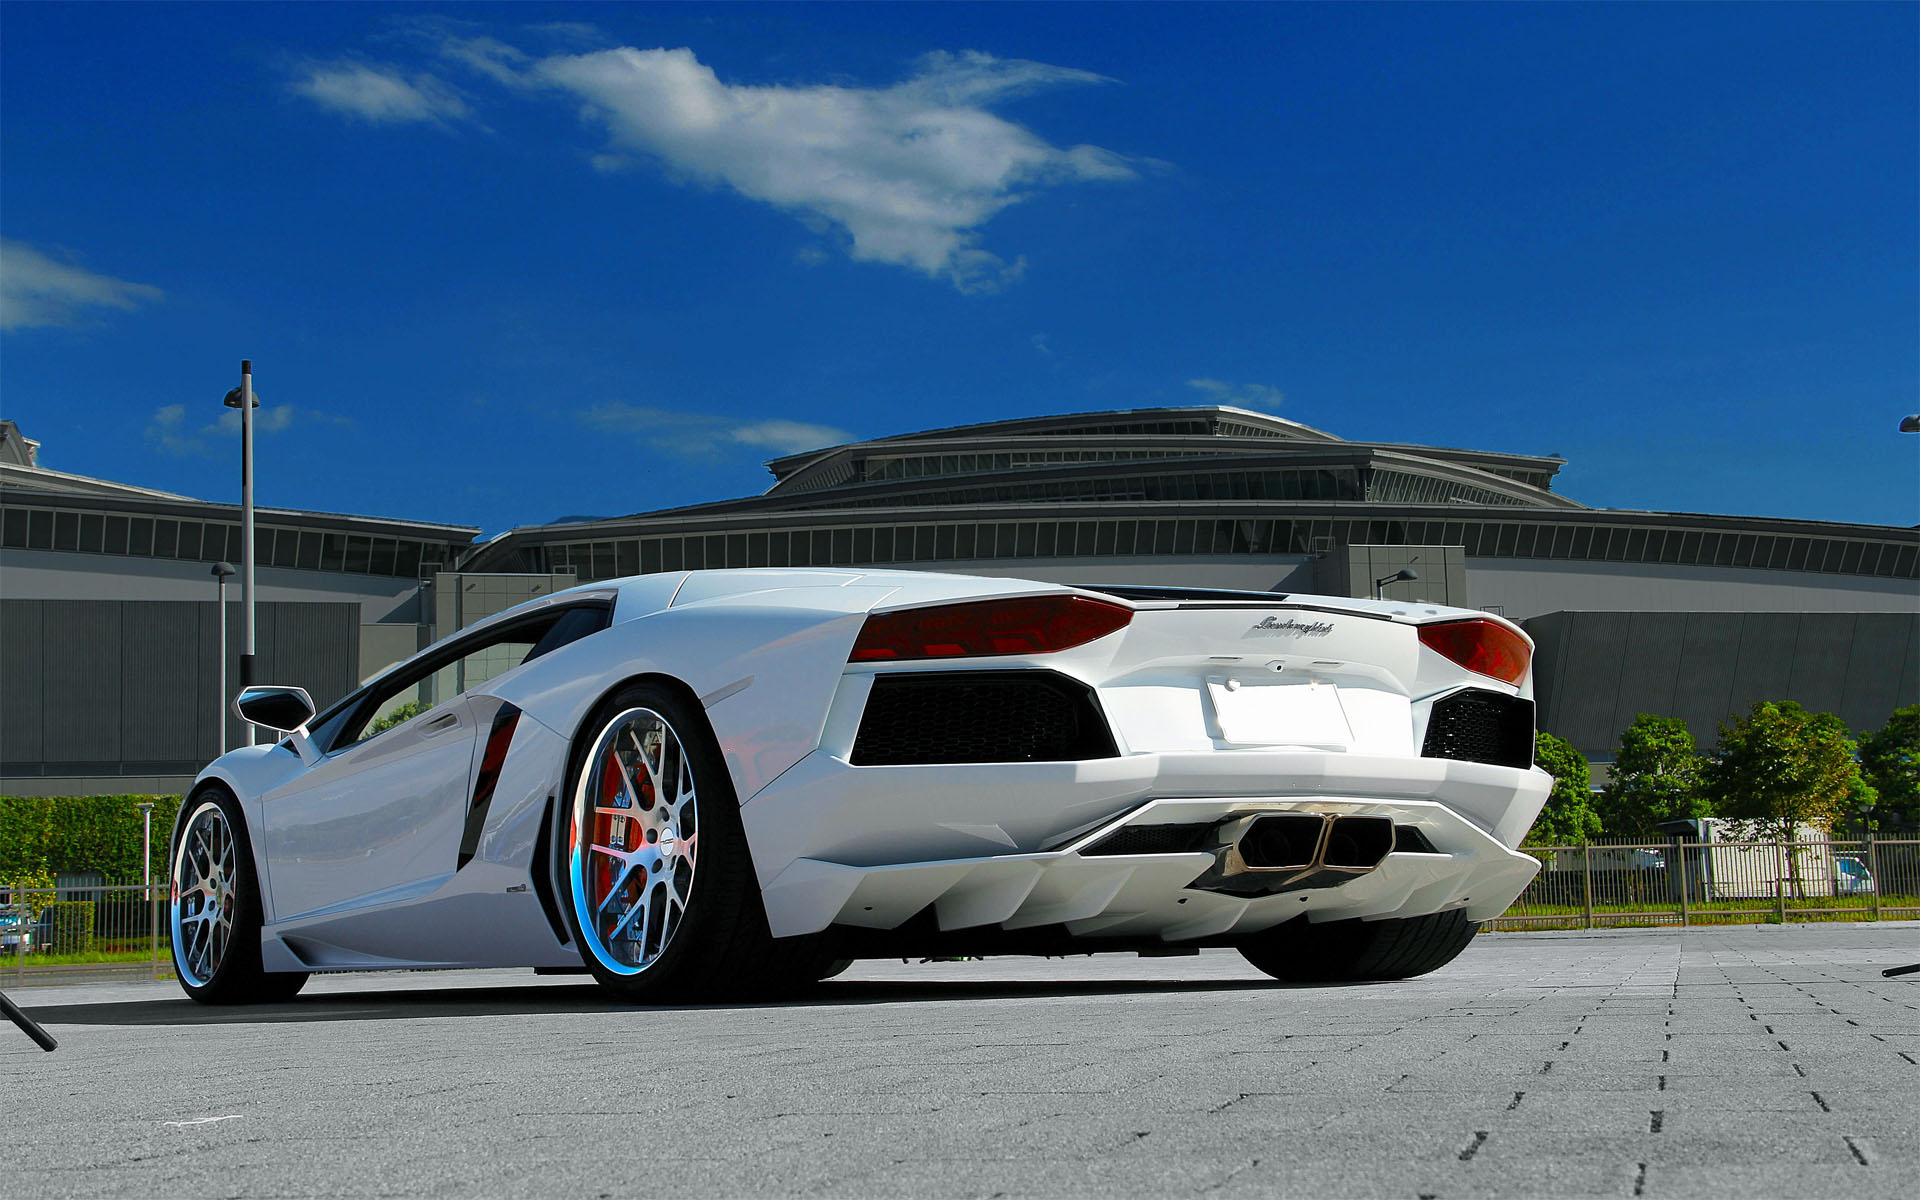 White Lamborghini Aventador LP700-4 HD wallpaper | HD ...